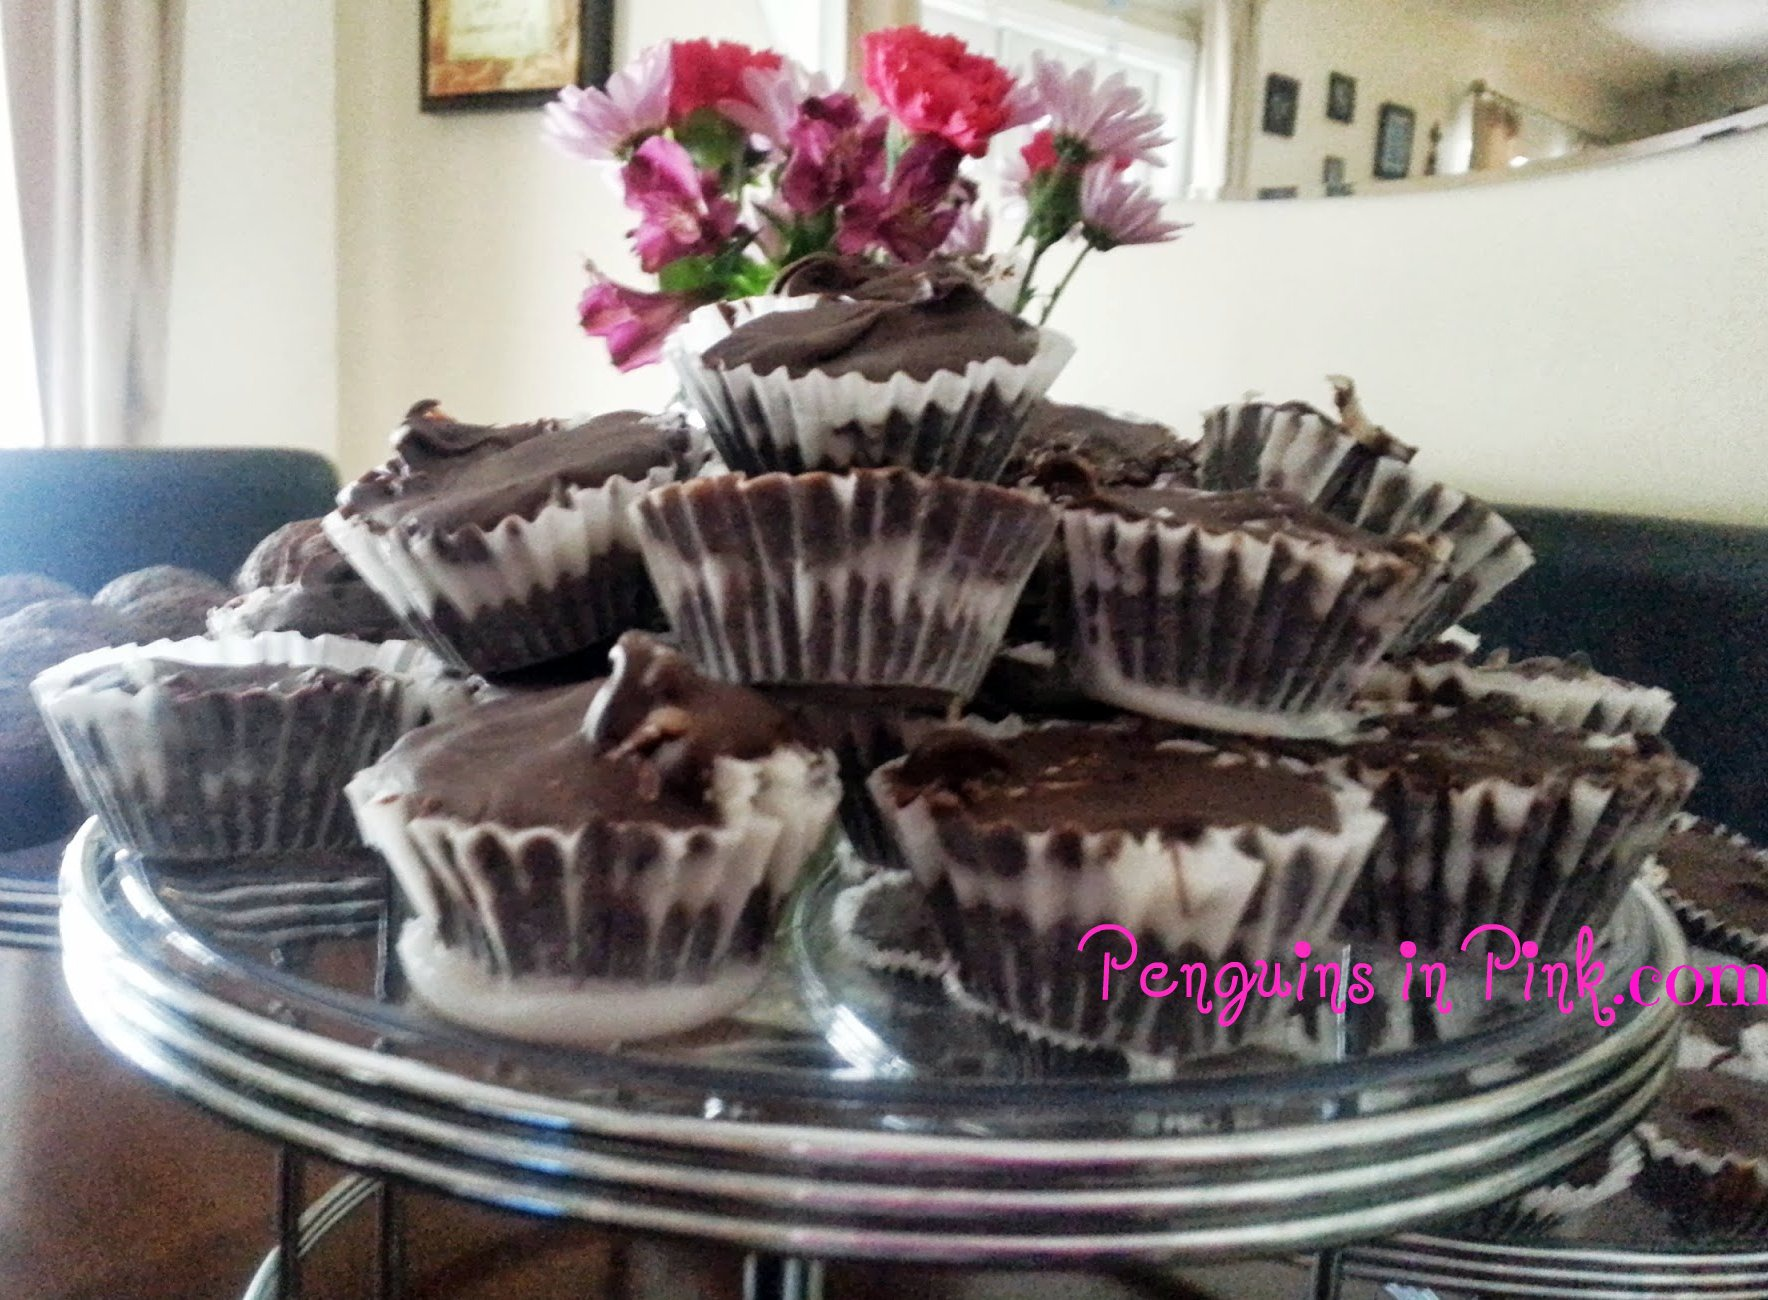 Coconut Cups. Smooth, creamy, dreamy, and velvety chocolate with a lush coconut center.  So much better than Mounds or Almond Joy Bars.